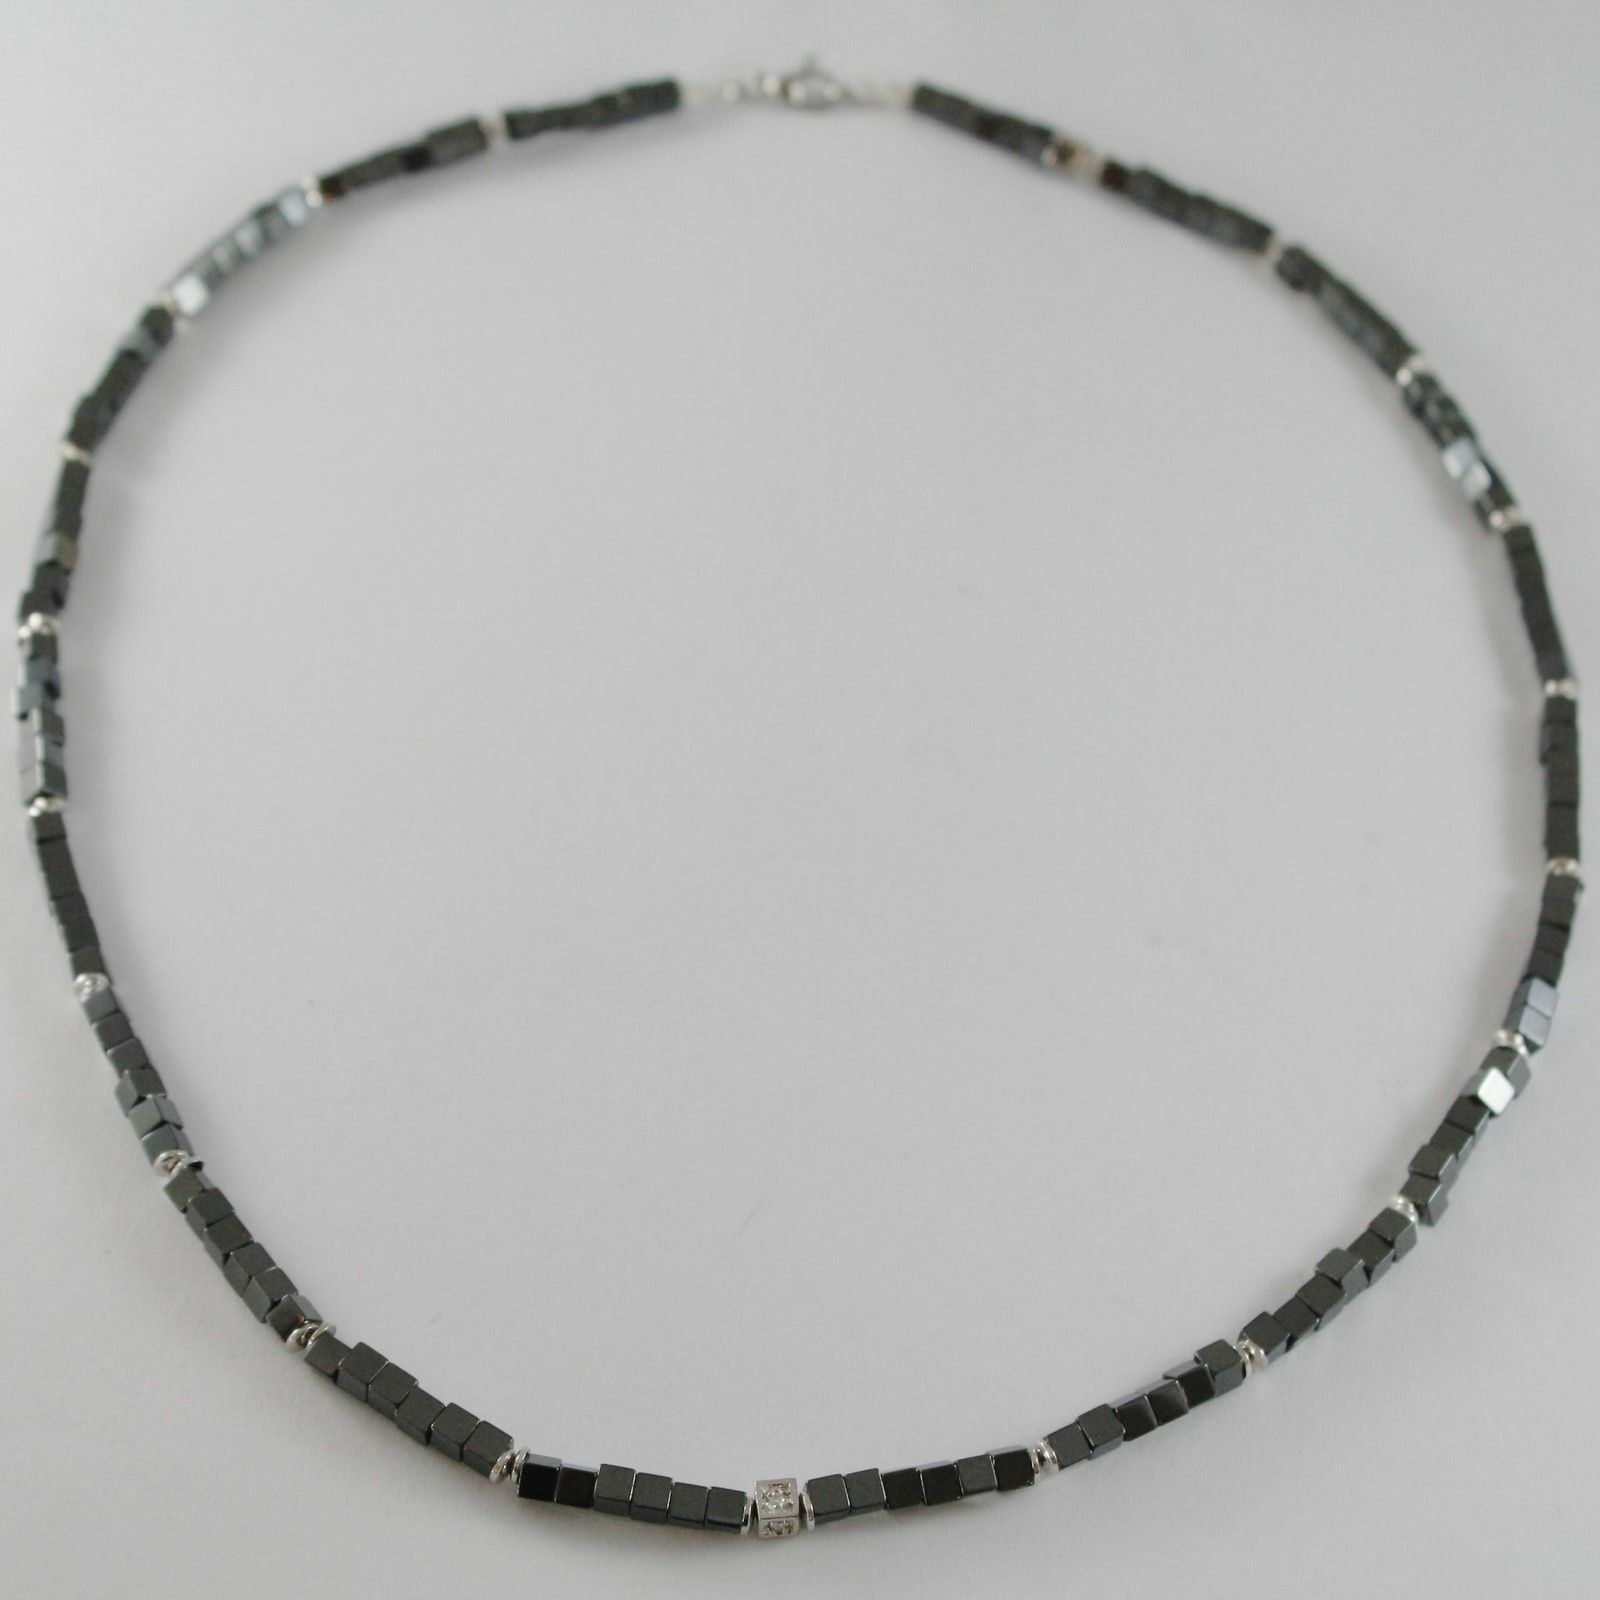 Primary image for NECKLACE GIADAN 925 SILVER HEMATITE LUCID AND 8 DIAMONDS WHITE MADE IN ITALY